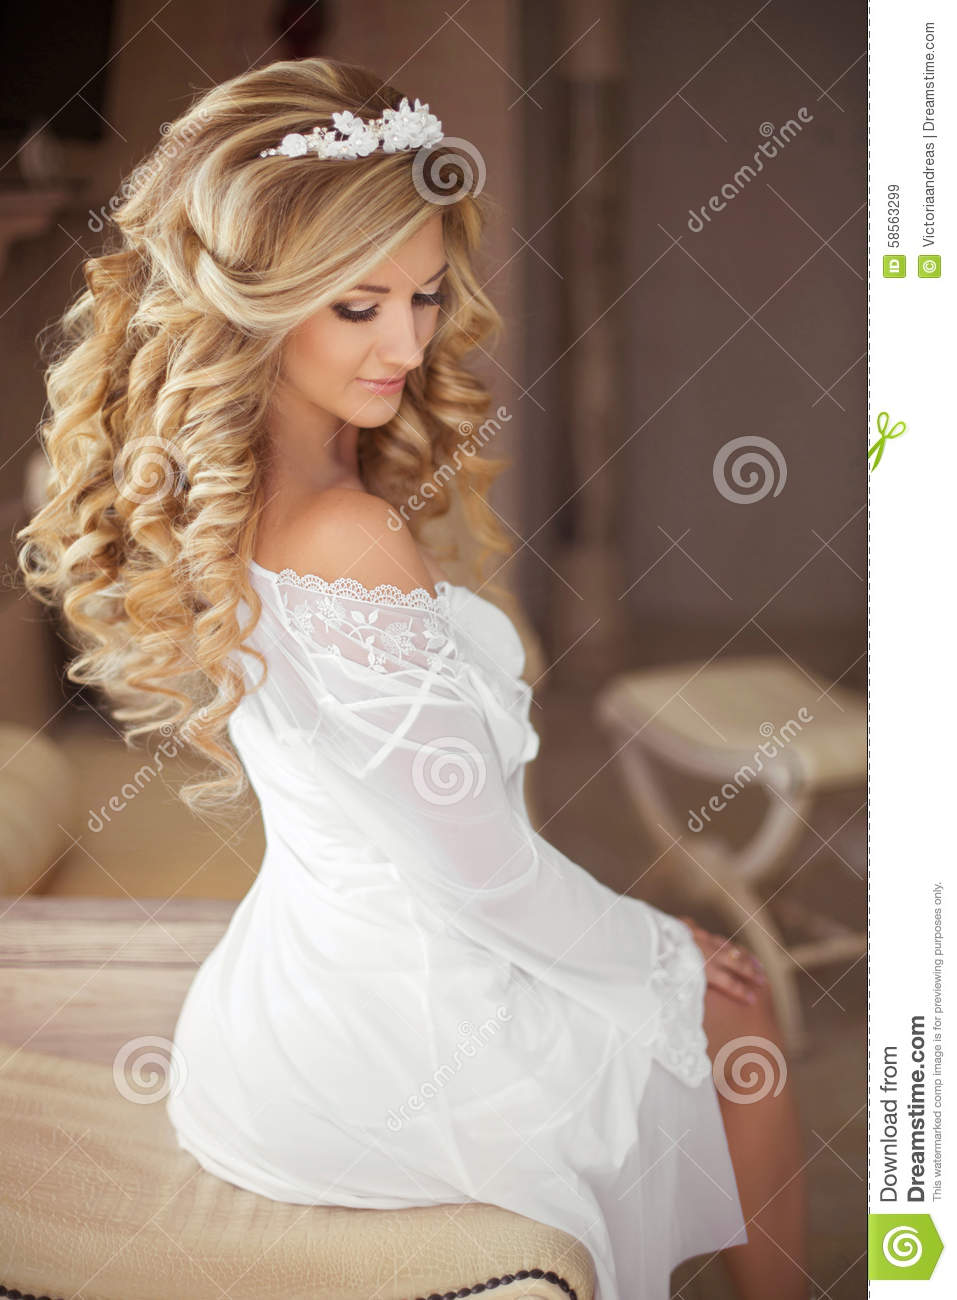 Healthy Hair Beautiful Smiling Bride With Long Blonde